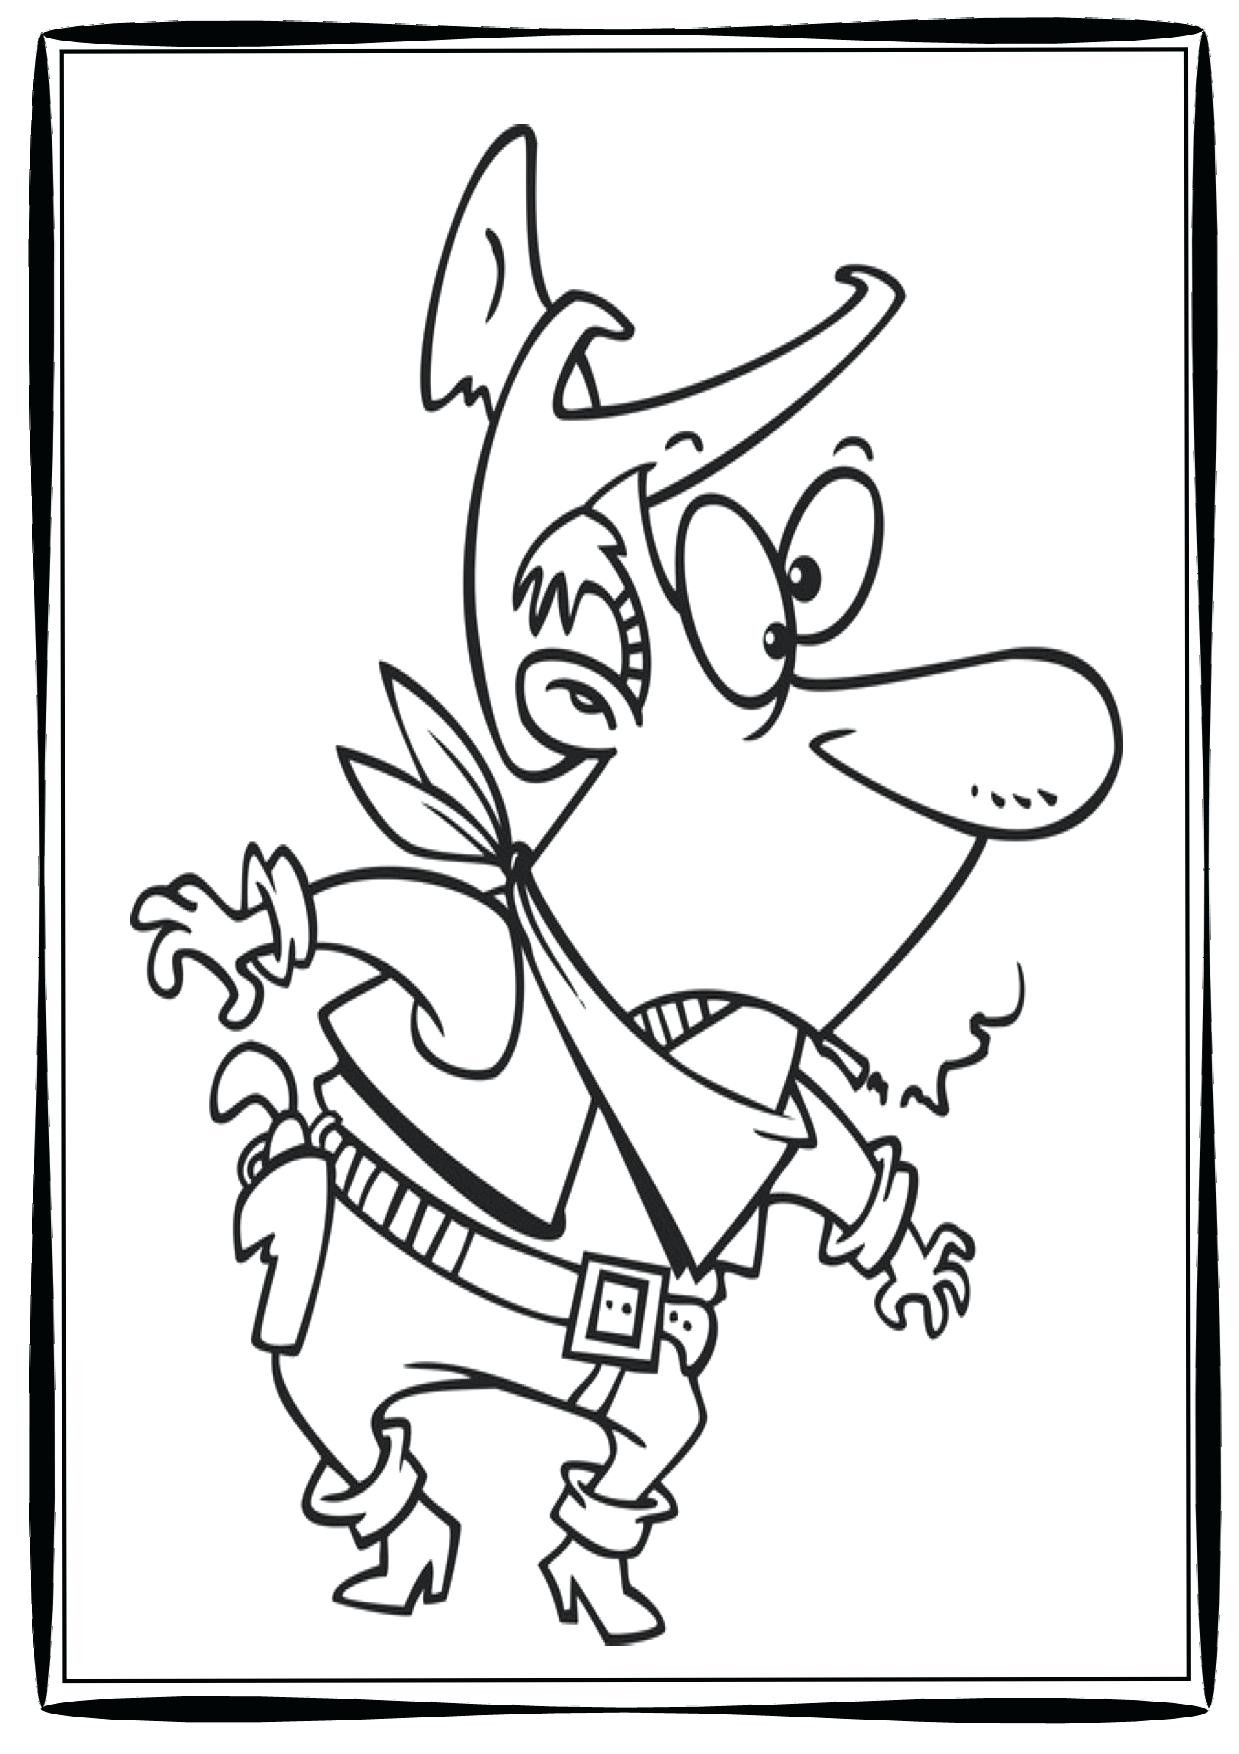 Cowboy Cowgirl Coloring Pages At Getcolorings